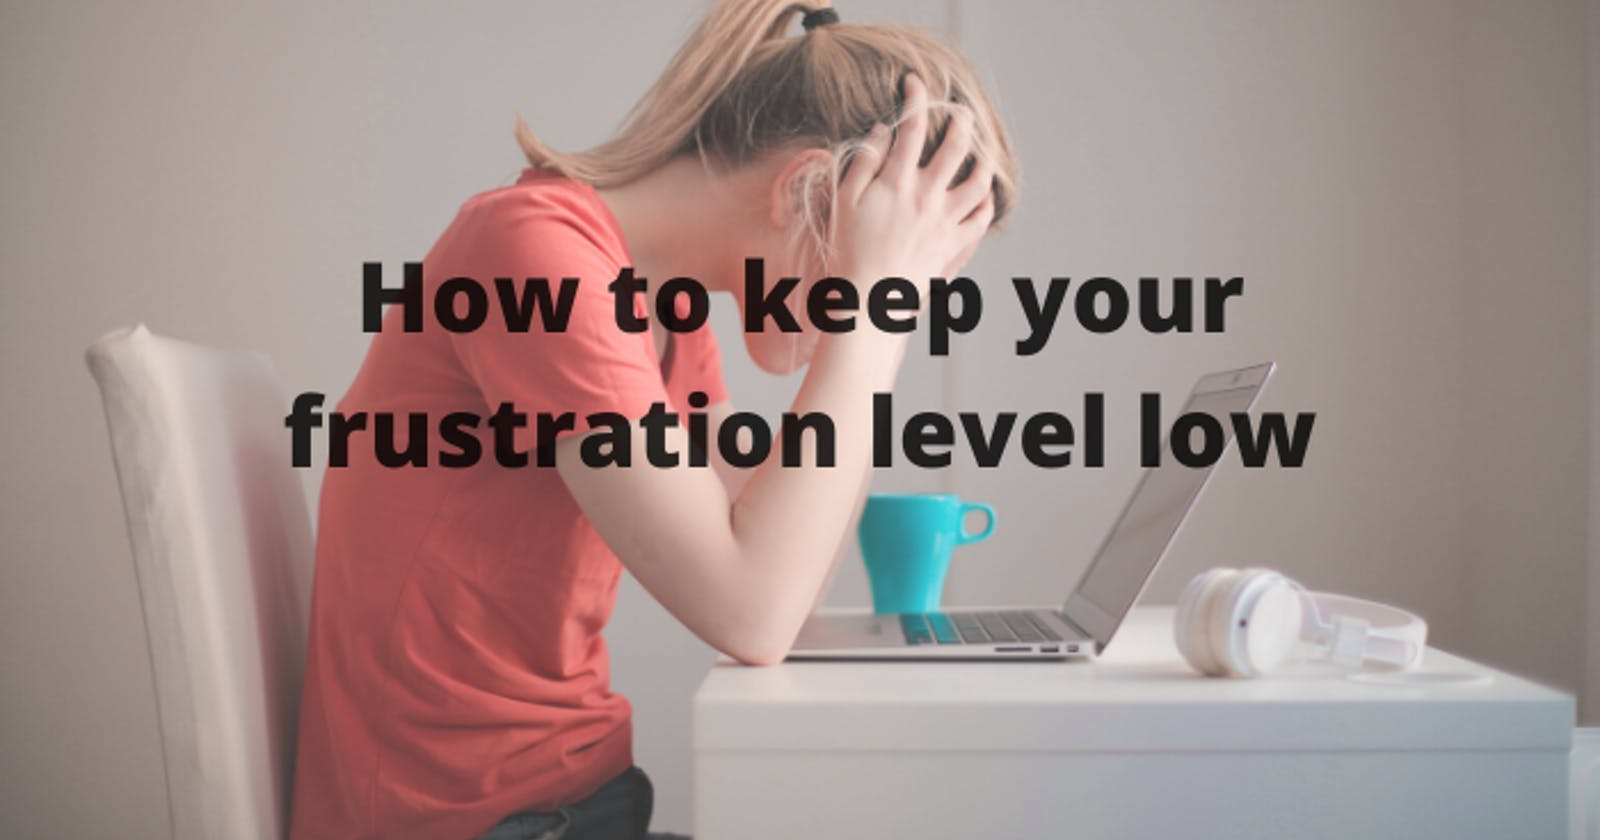 How to keep your frustration level low